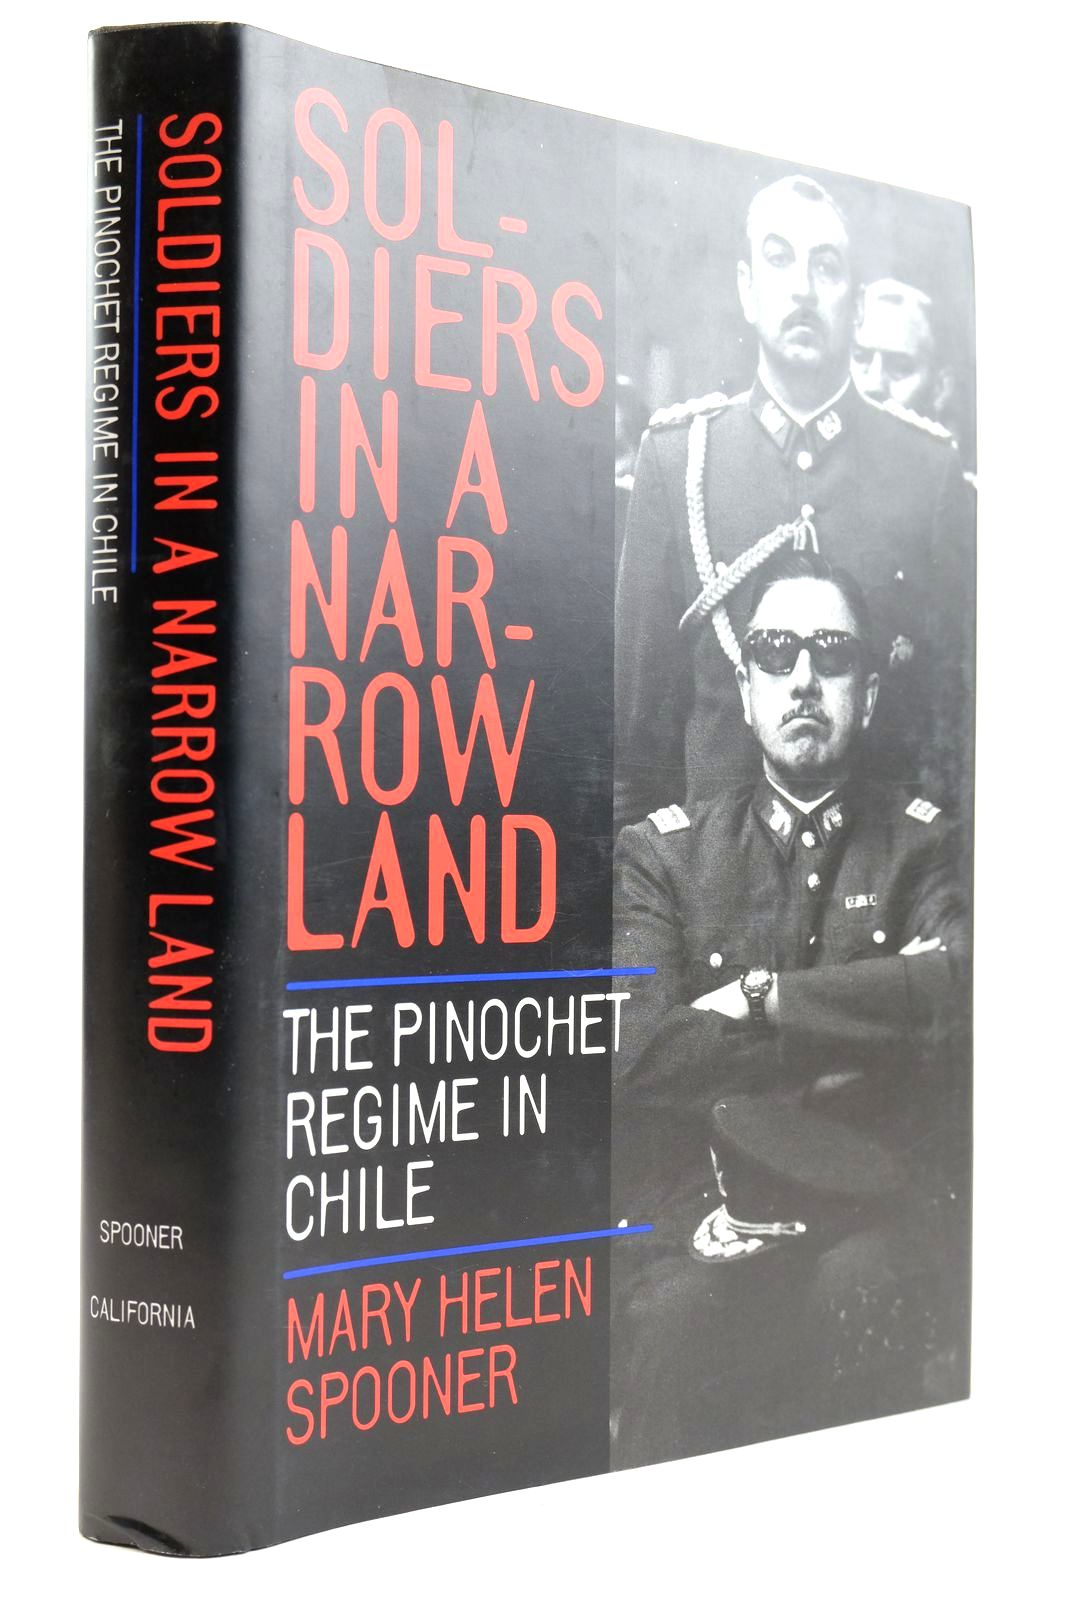 Photo of SOLDIERS IN A NARROW LAND THE PINOCHET REGIME IN CHILE- Stock Number: 2132642